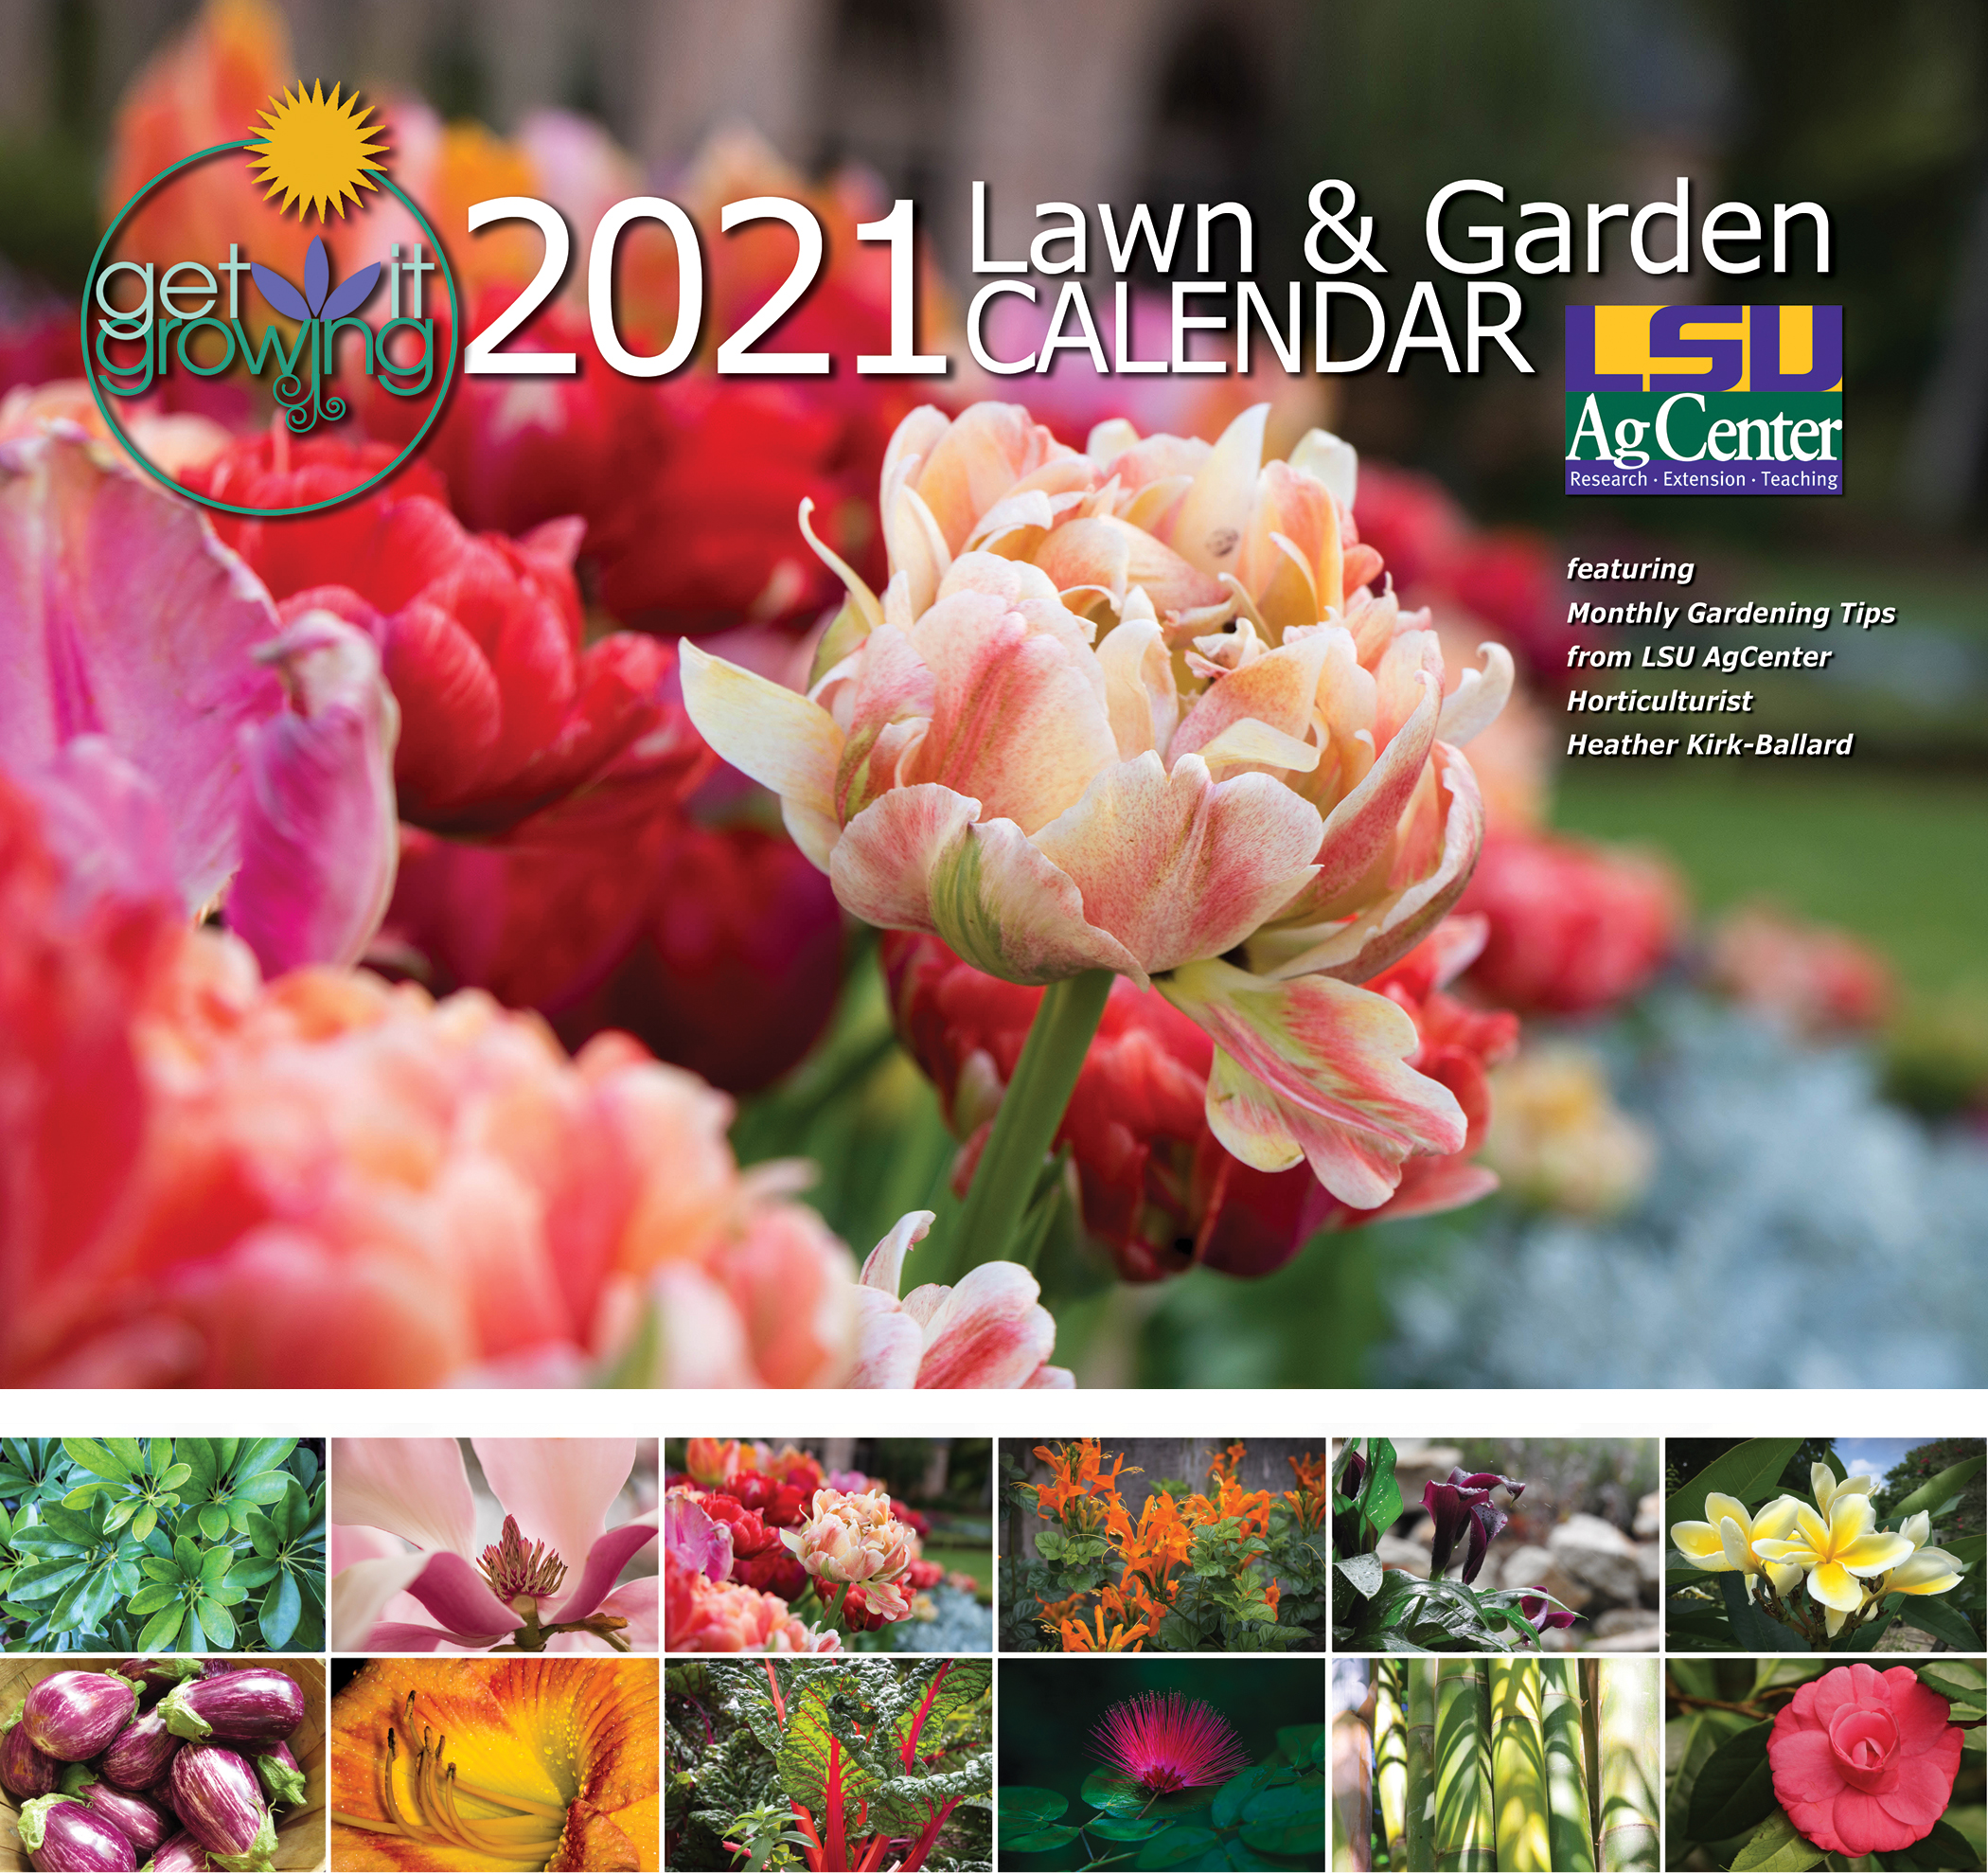 Get It Growing Lawn & Garden Calendar